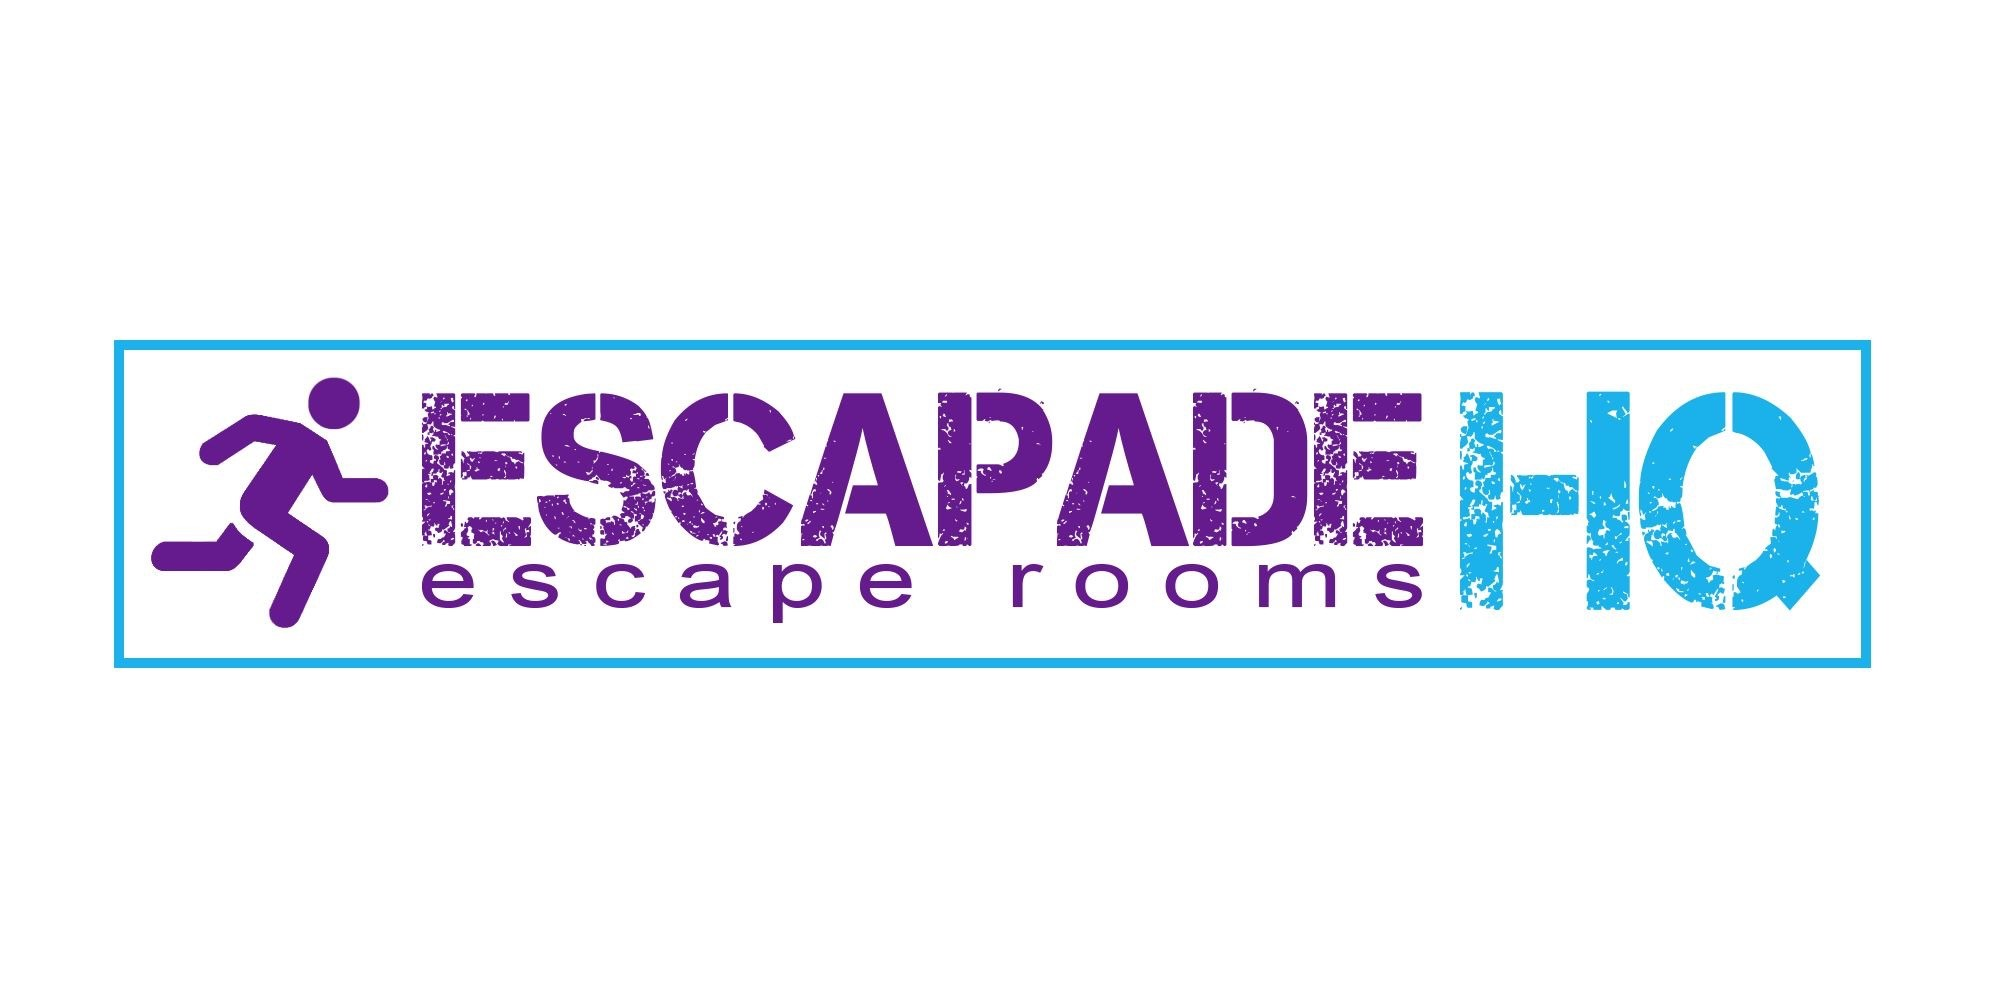 Escapade Logo reading: Escapade escape rooms